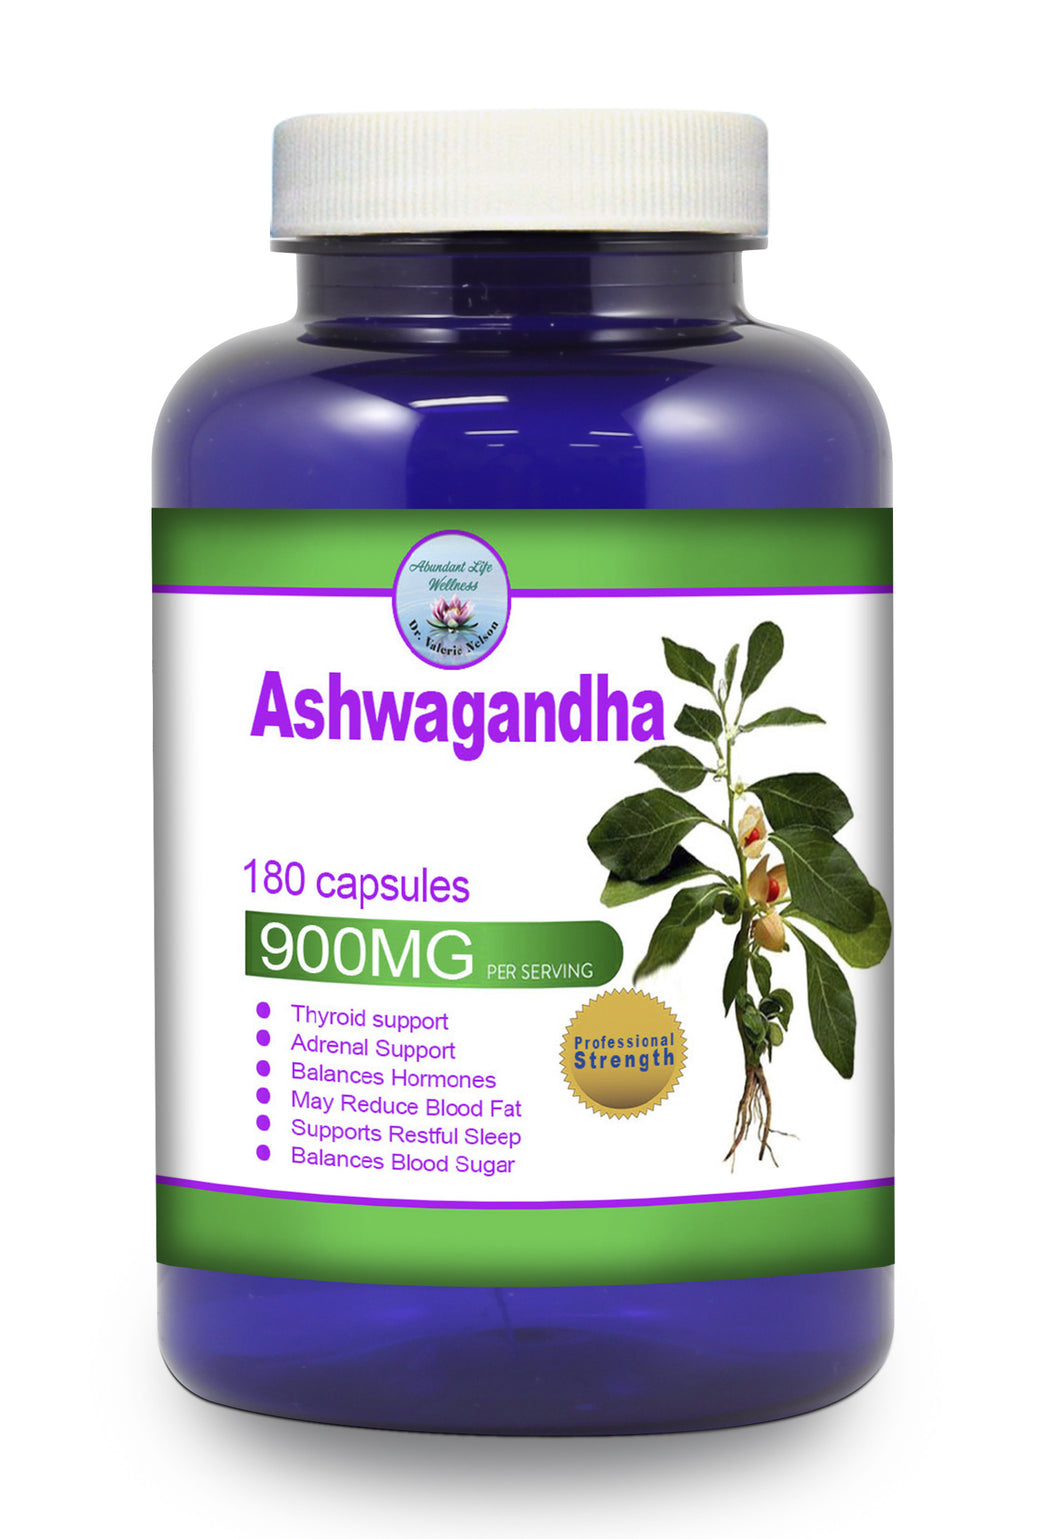 Ashwagandha - 50% Off - While Supplies Last - We are doing a label update